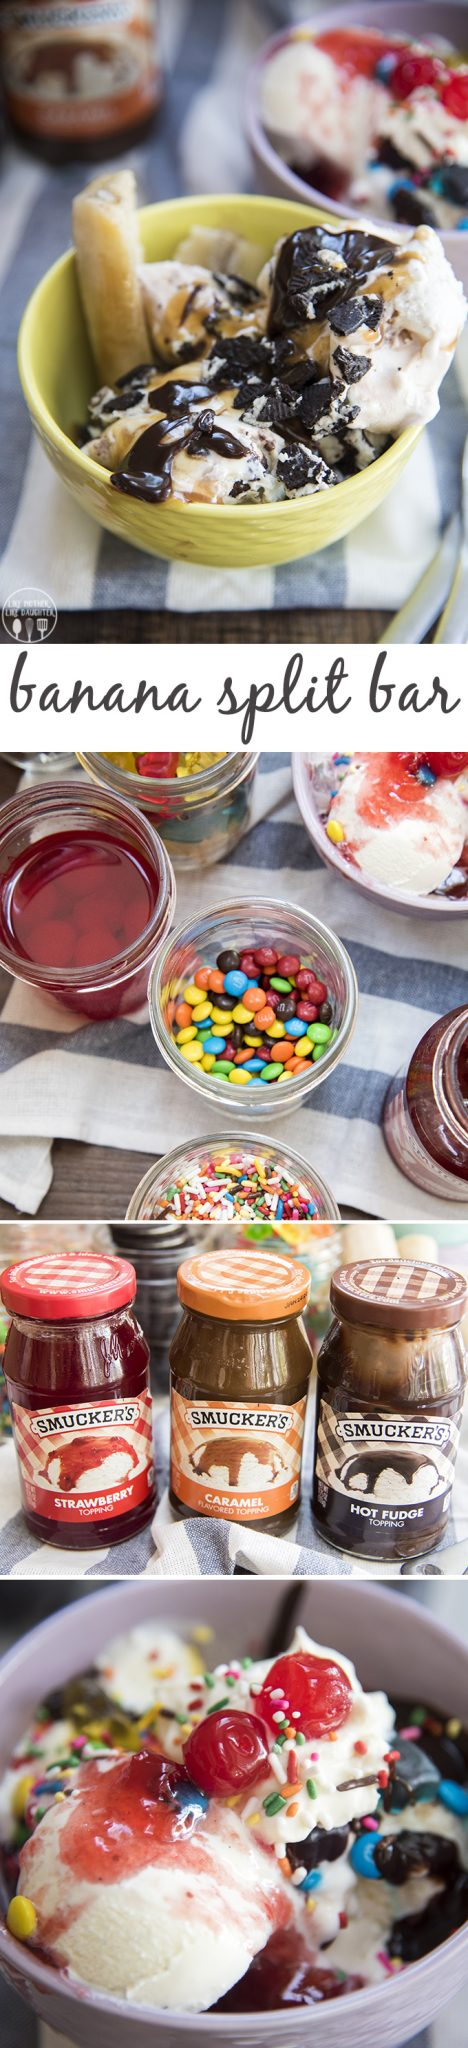 Banana Split Bar - This is a great way to make a dessert everyone will love because everyone can customize their ice cream with the toppings and sauces they love! It will be a huge hit!